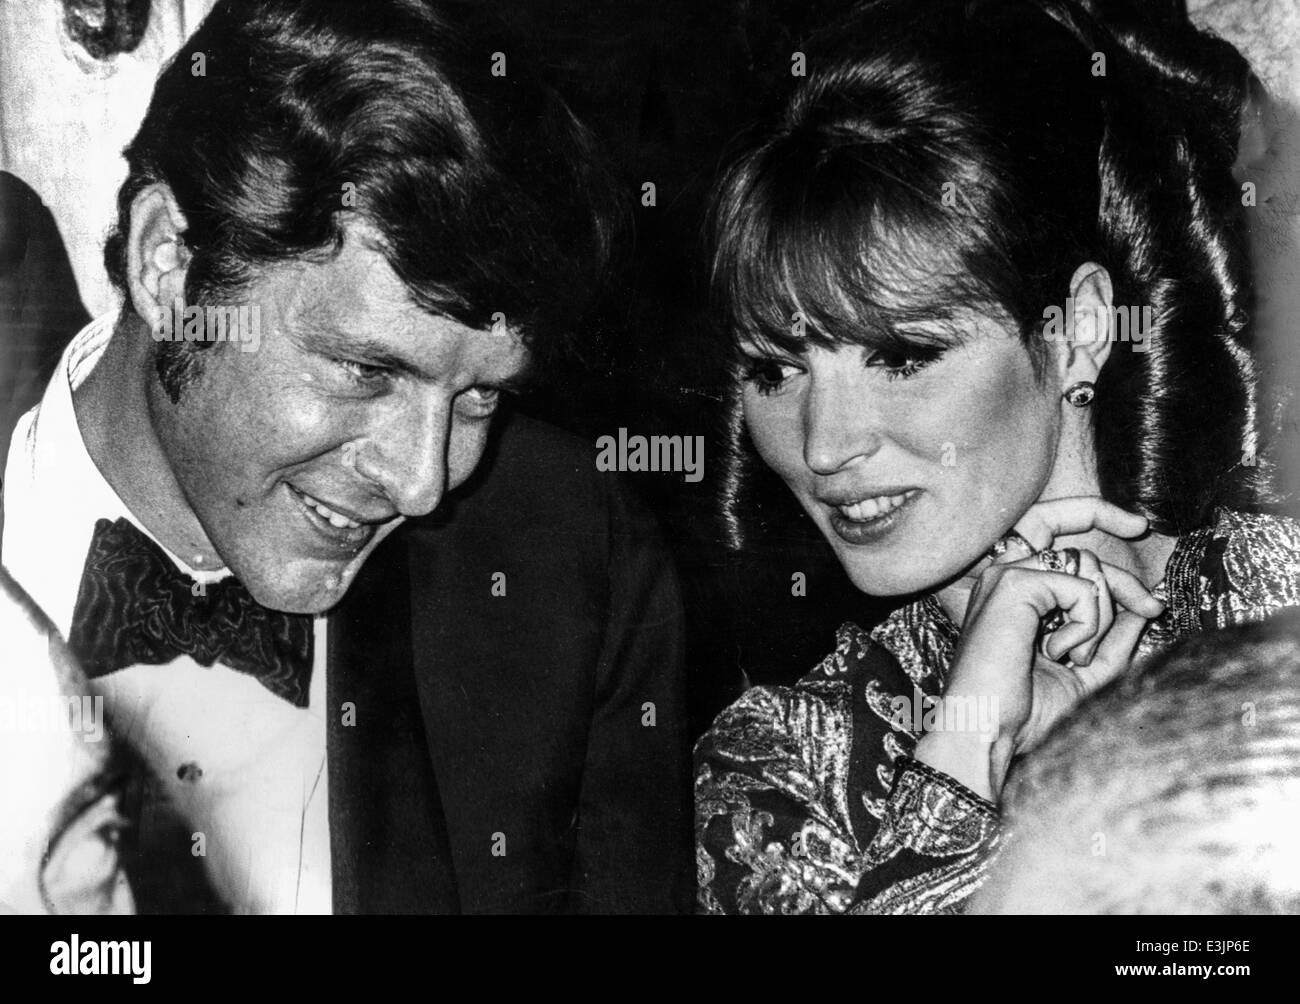 john paul getty and talitha dina pol,1967 - Stock Image